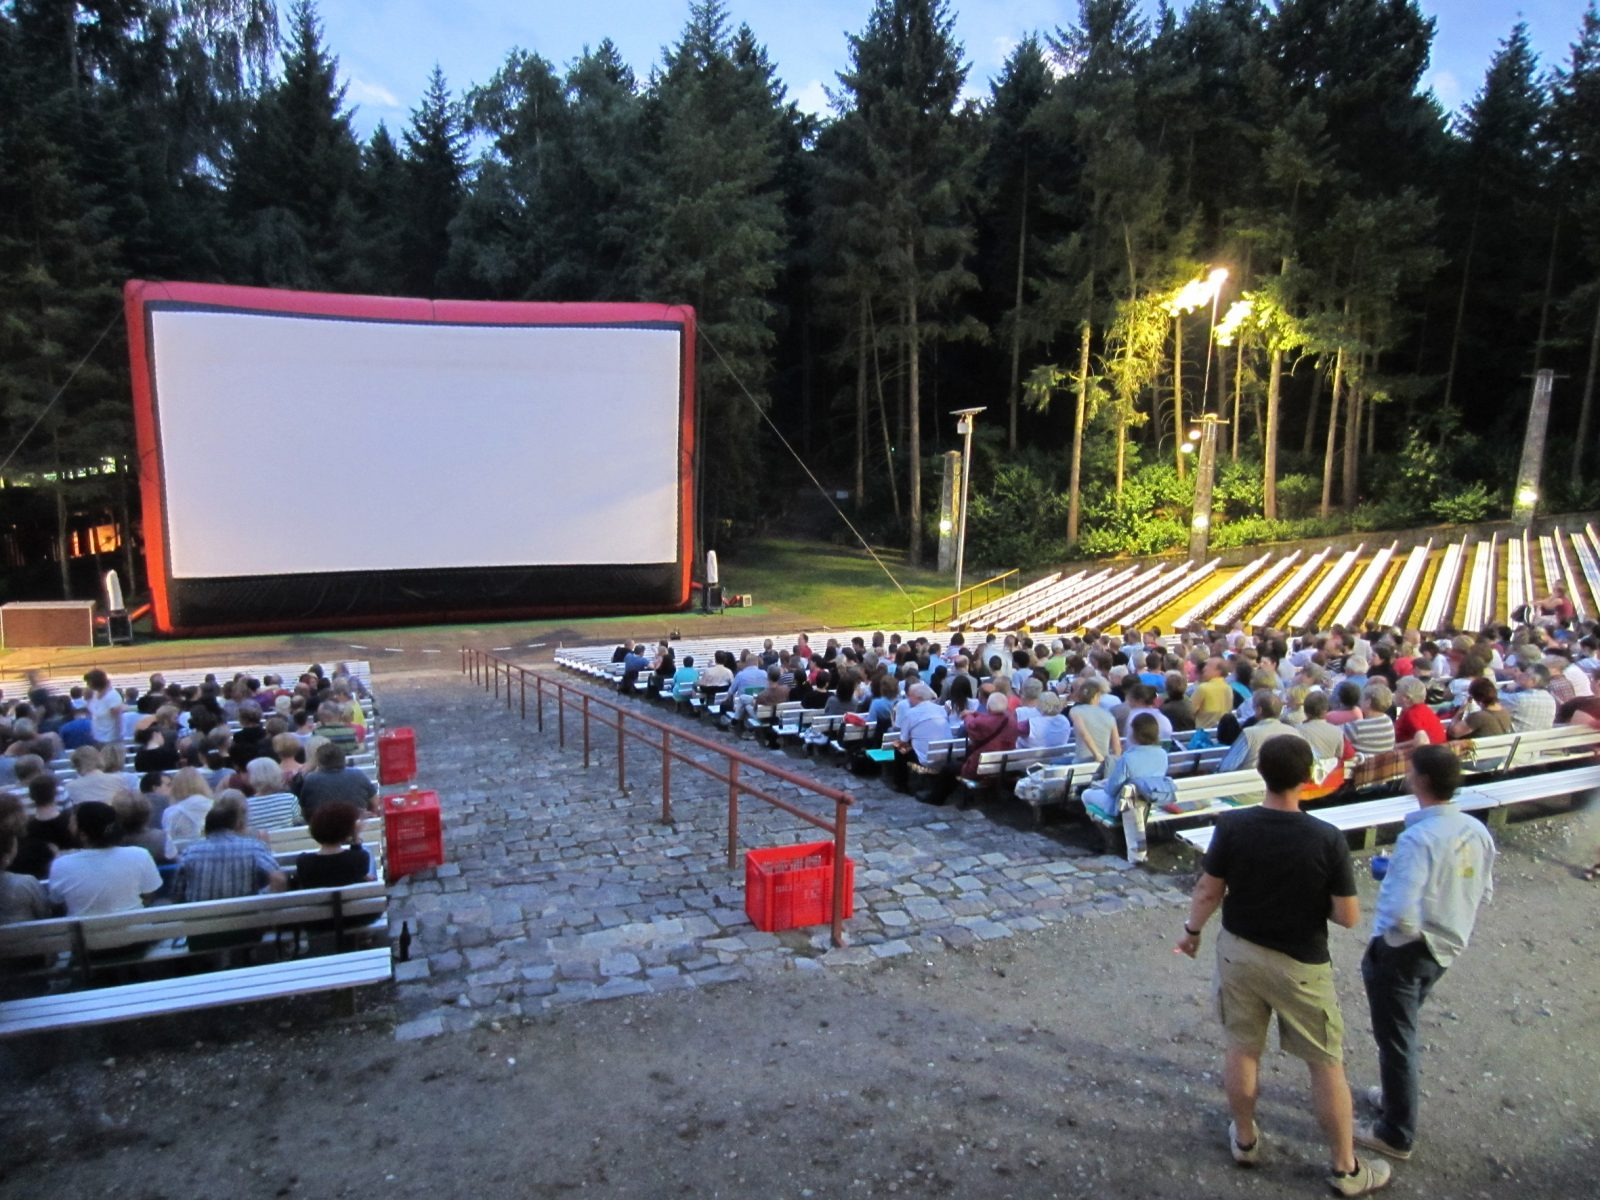 Open air cinema Rehberge by dusk, people sitting on benches, screen is white.